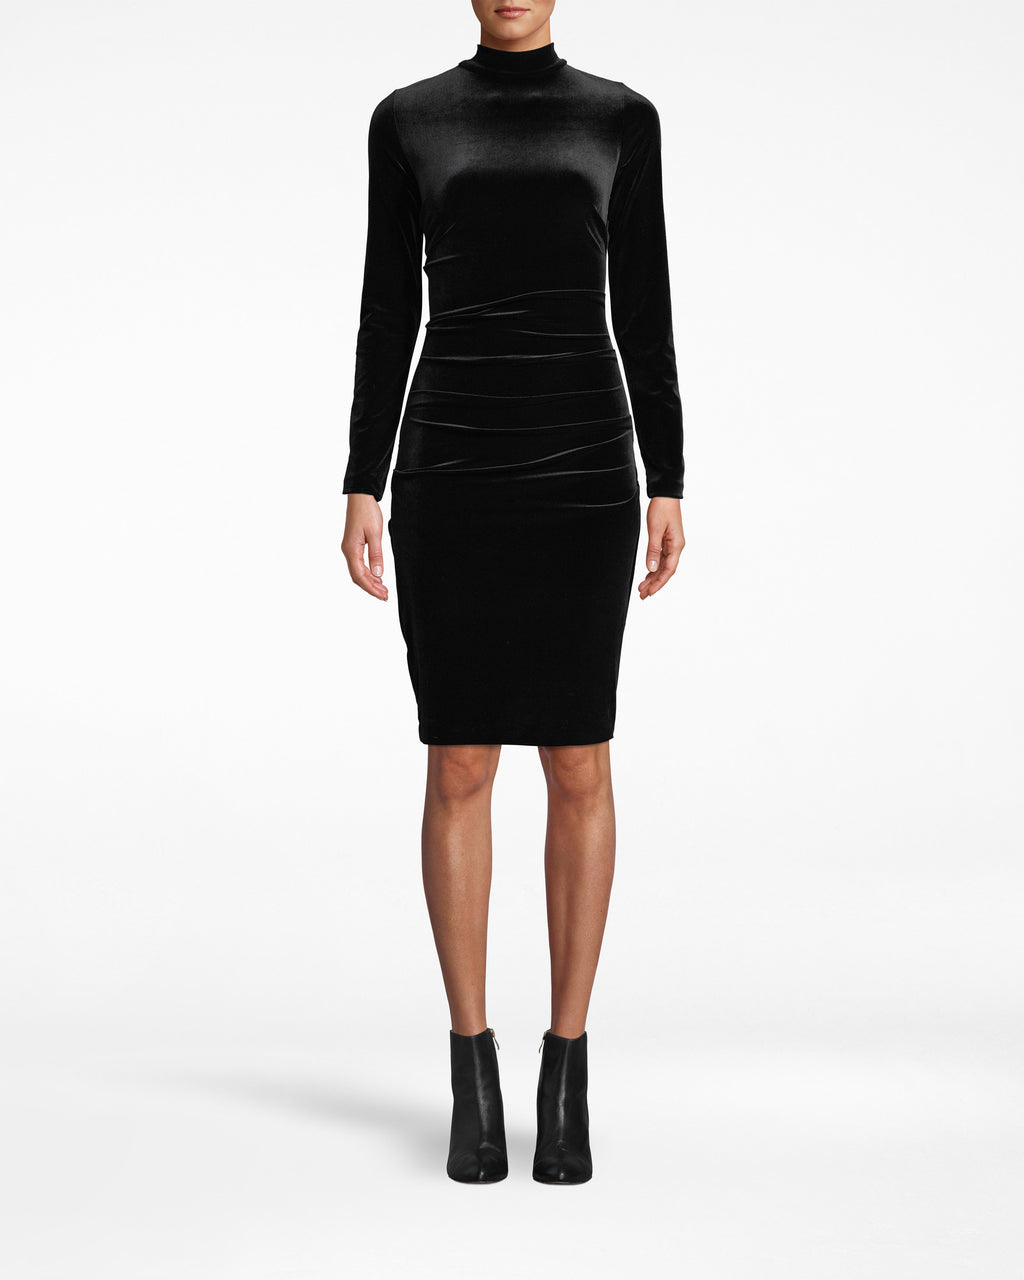 BL20019 - TURTLENECK DRESS - dresses - short - Your favorite turtleneck, in dress form. This long sleeve stunner hugs your body and gathers near the waist. Its uncomplicated design makes it all the more eye-catching. Back keyhole cutouts and exposed buttons for closure.